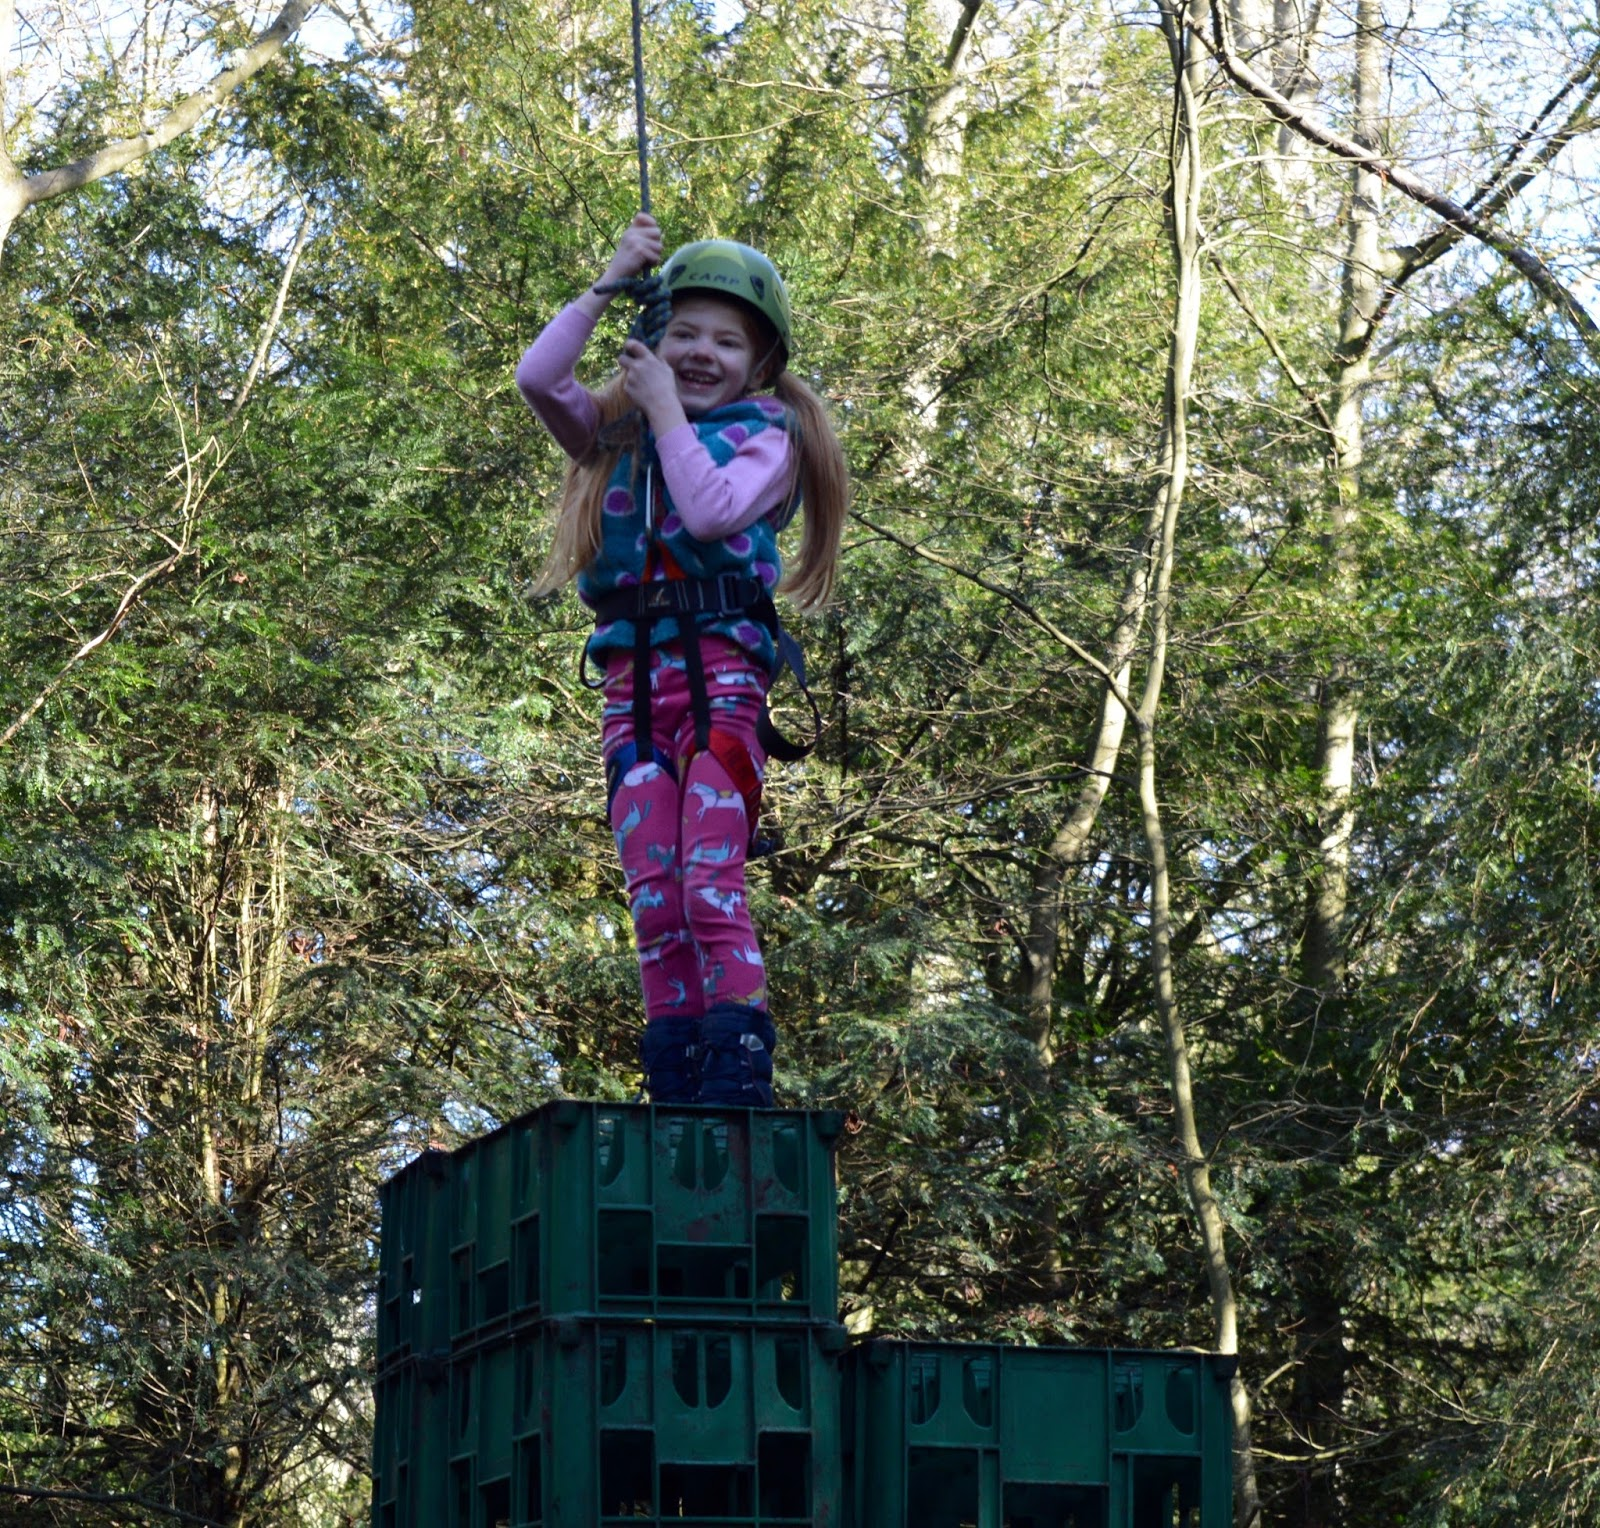 Beamish Wild | School Holiday Club & Activities in County Durham | North East England - at the stop of crate stack